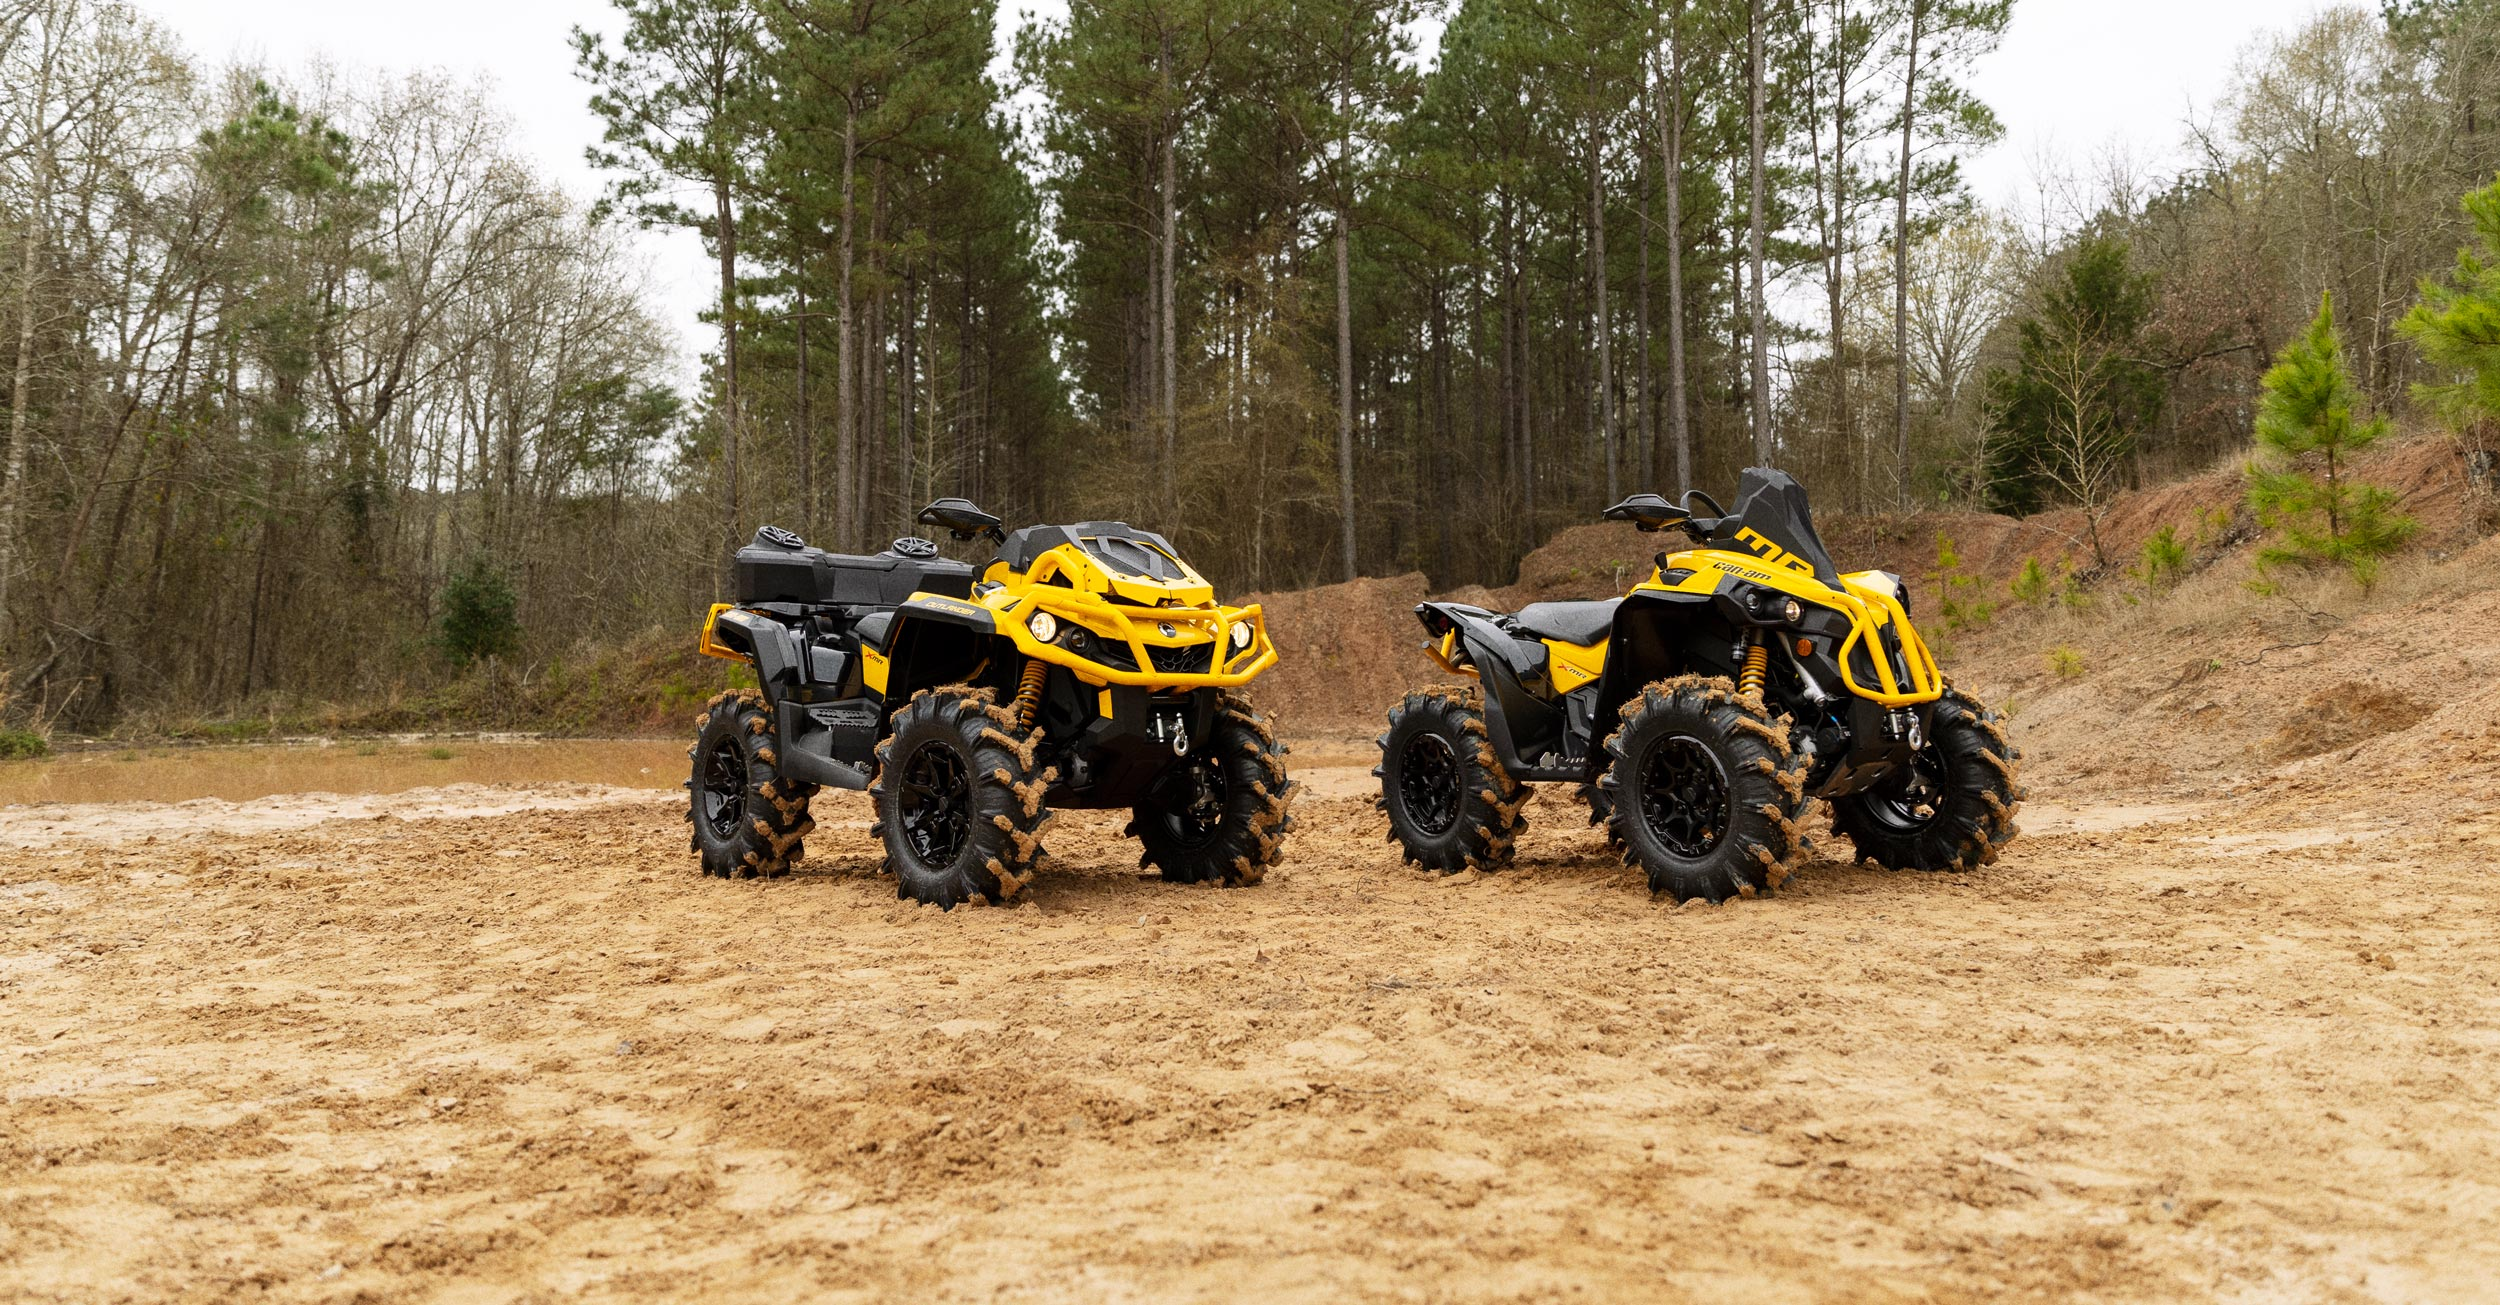 2021 Can-Am X mr ATV voertuig